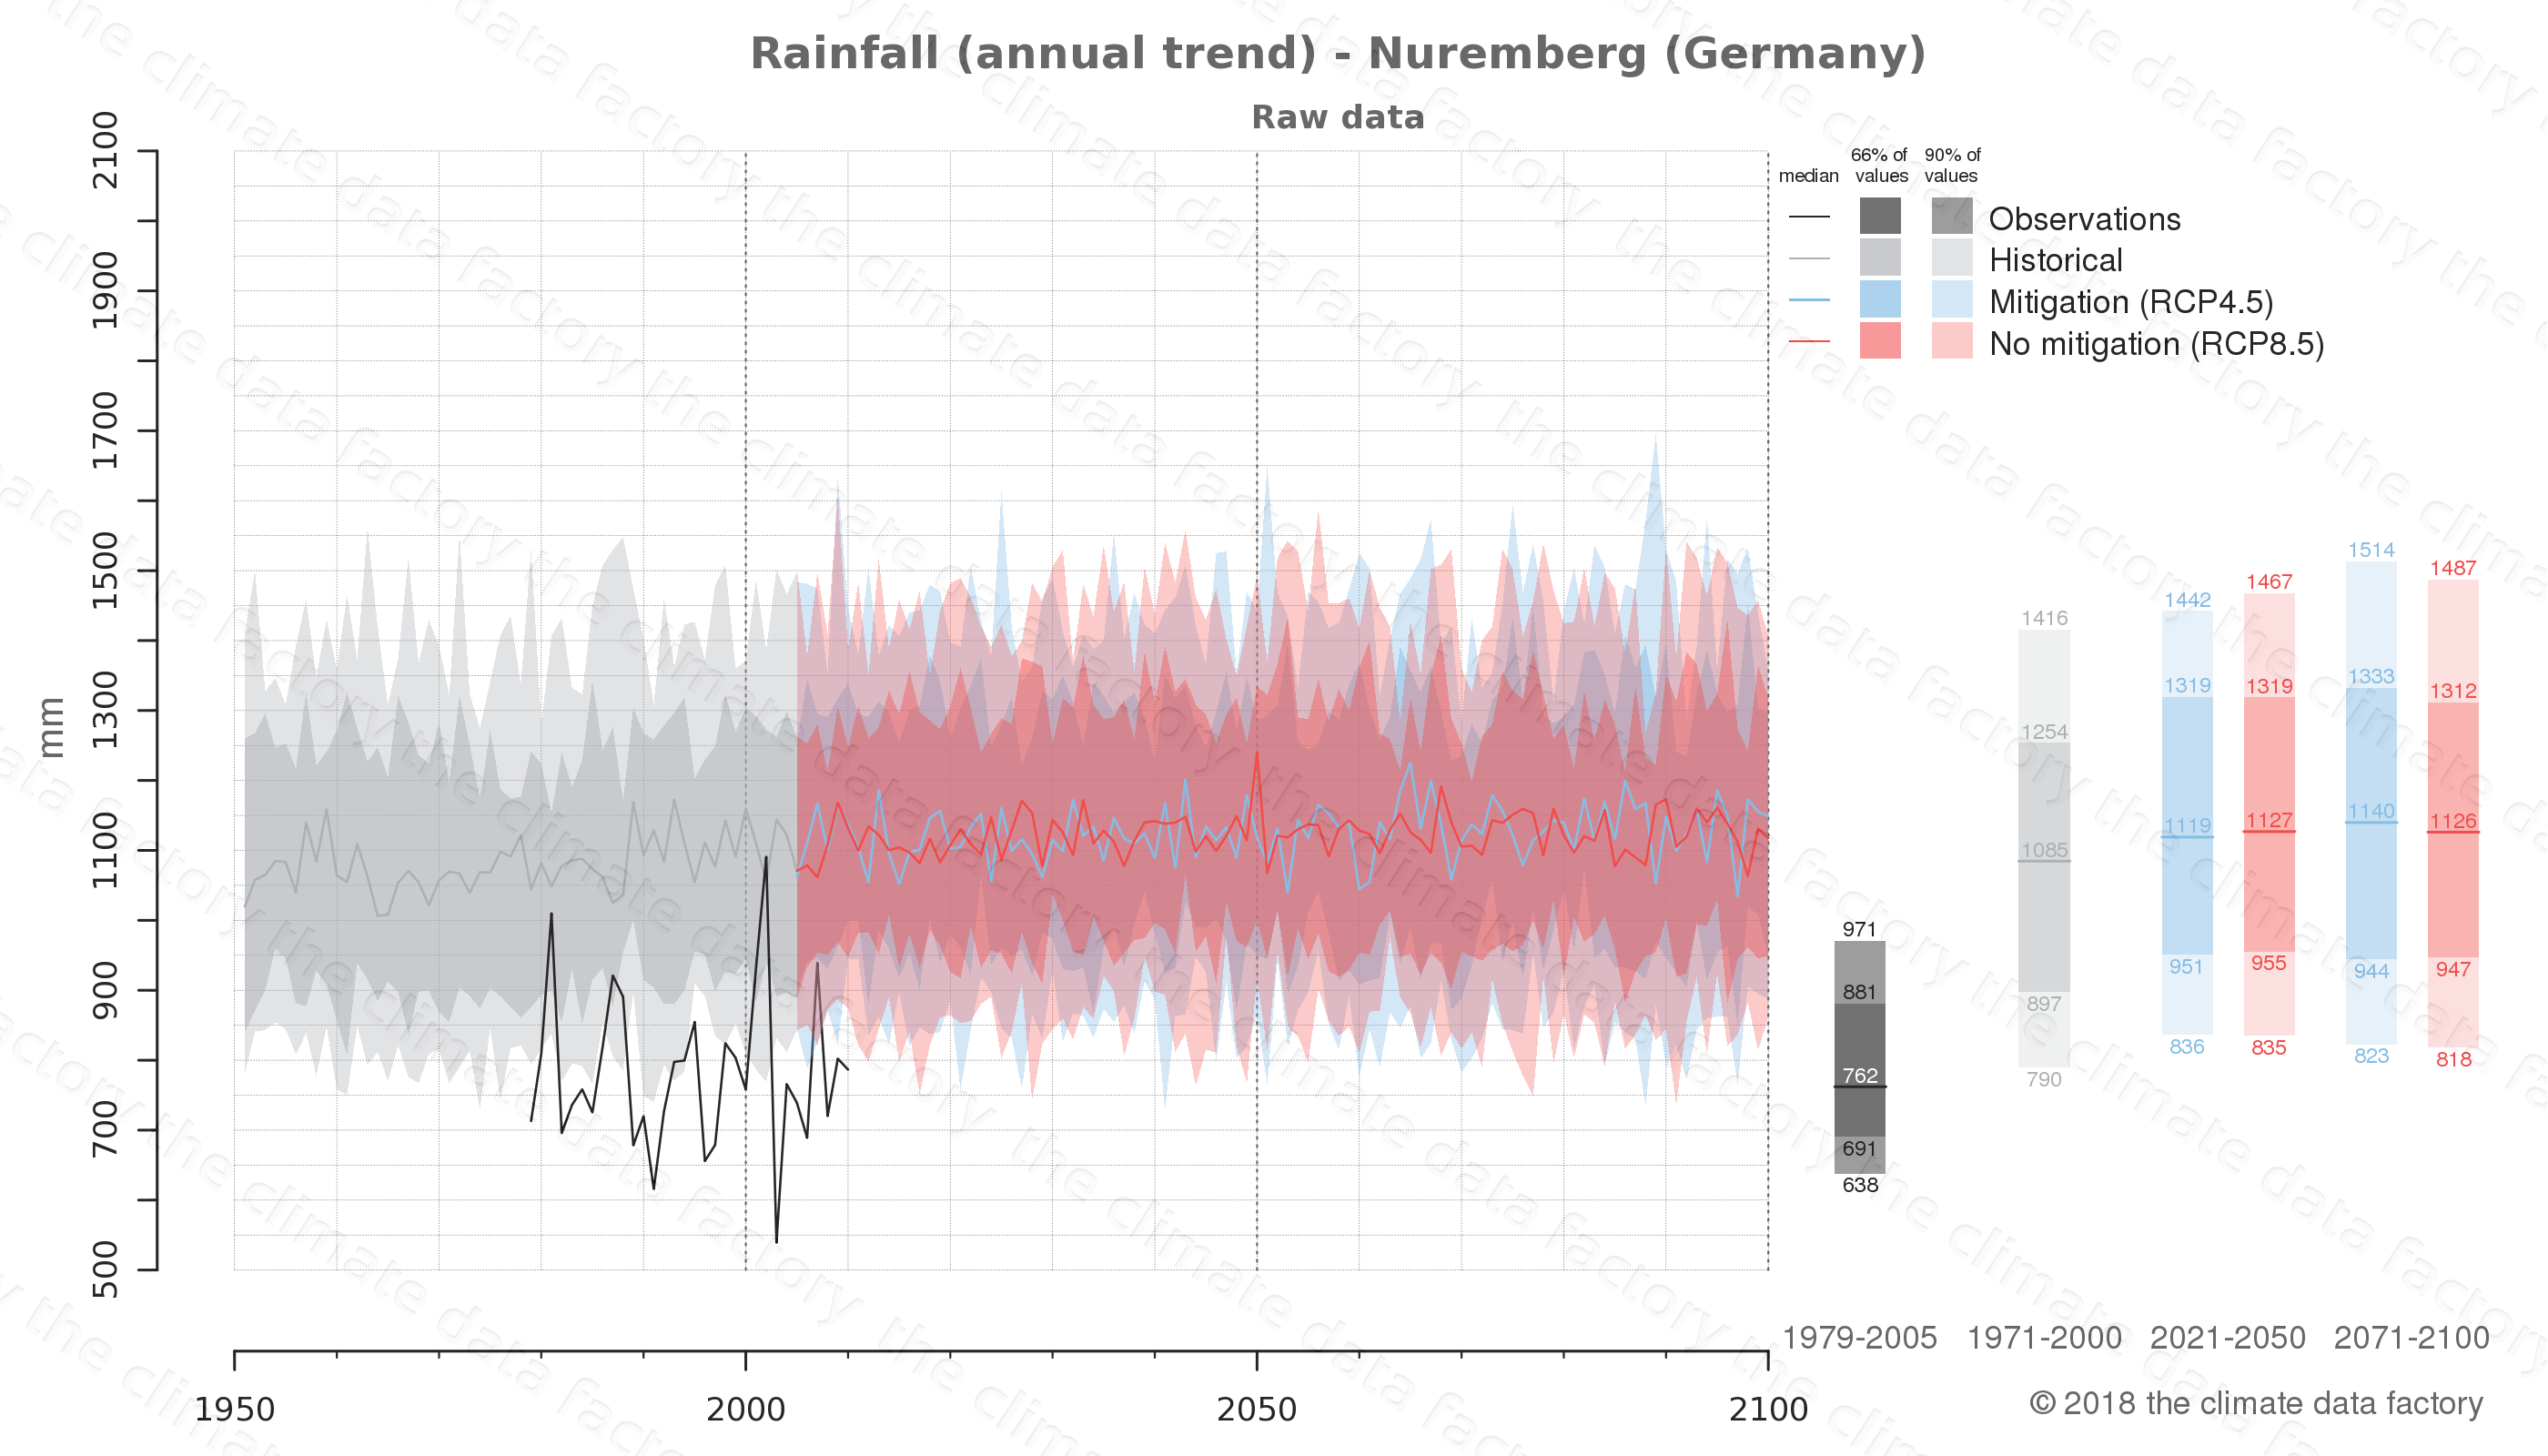 climate change data policy adaptation climate graph city data rainfall nuremberg germany